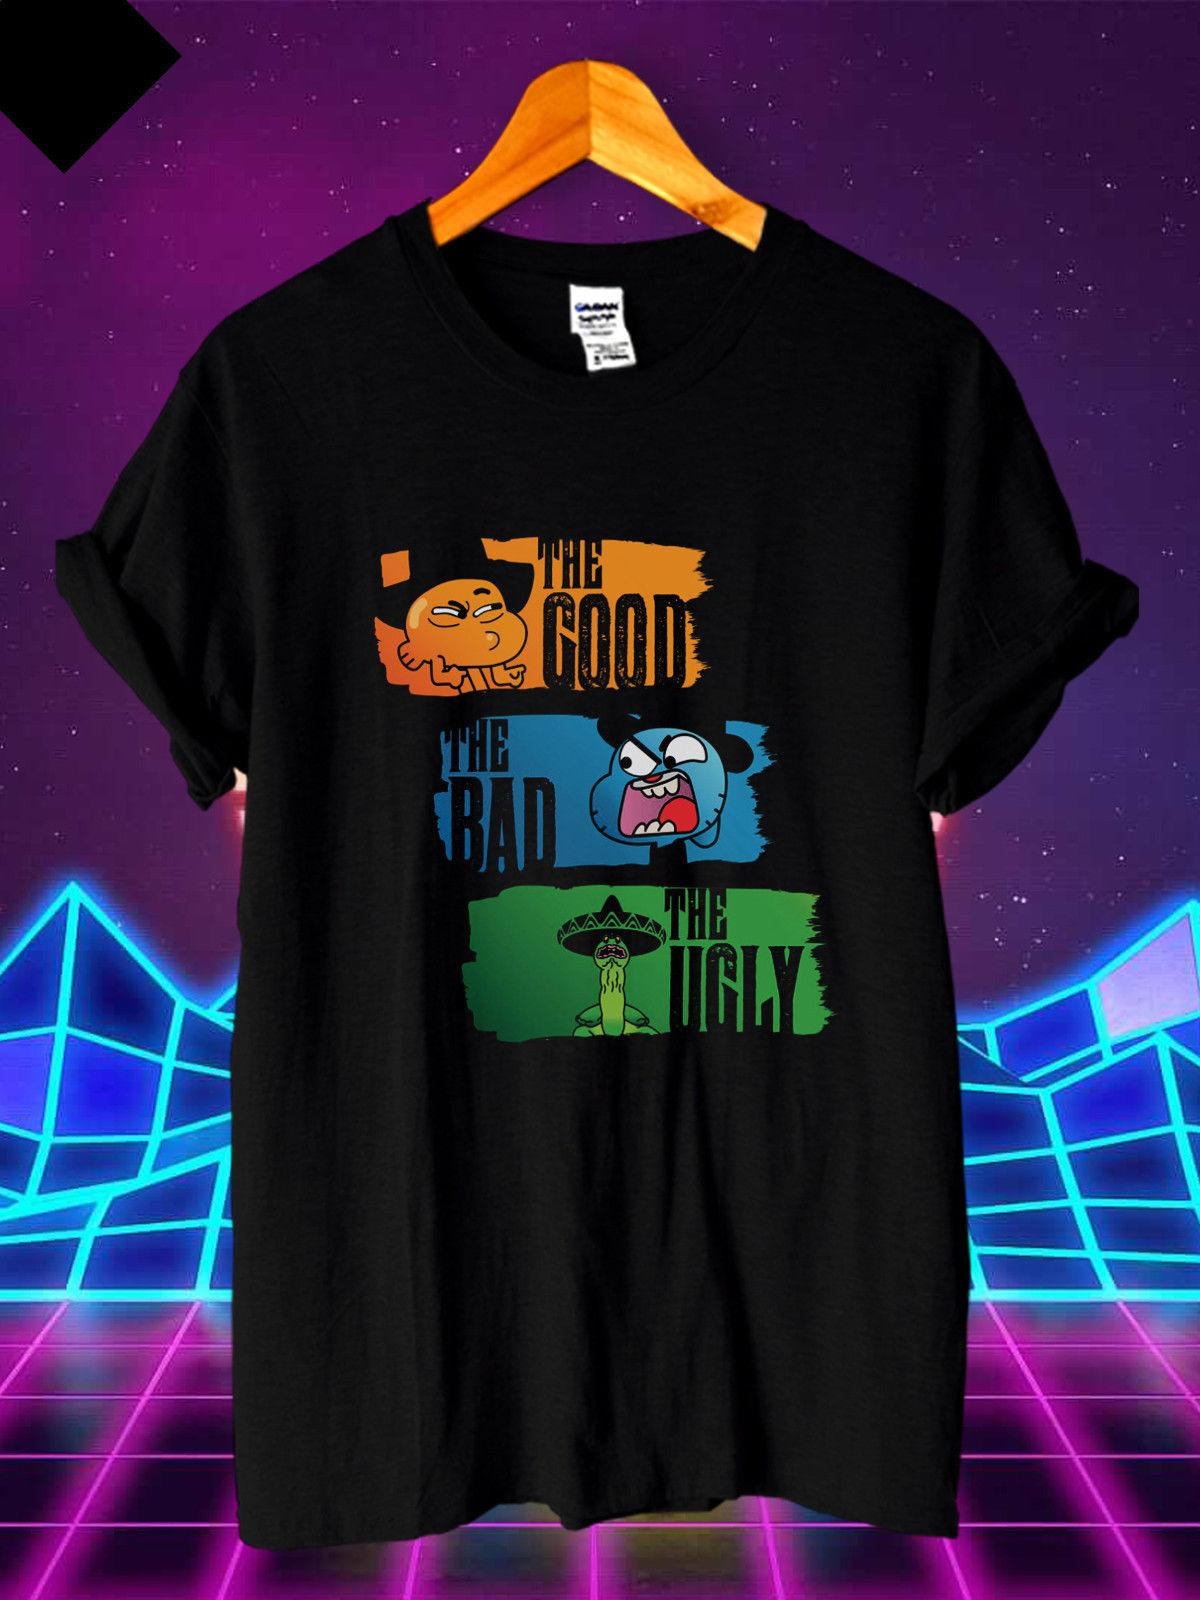 the amazing world of gumball darwin good bad ugly new men\u0027s t shirtthe amazing world of gumball darwin good bad ugly new men\u0027s t shirt s m l xl 2xl 3xl it t shirts humor t shirts from crazytshirts30, $11 58 dhgate com